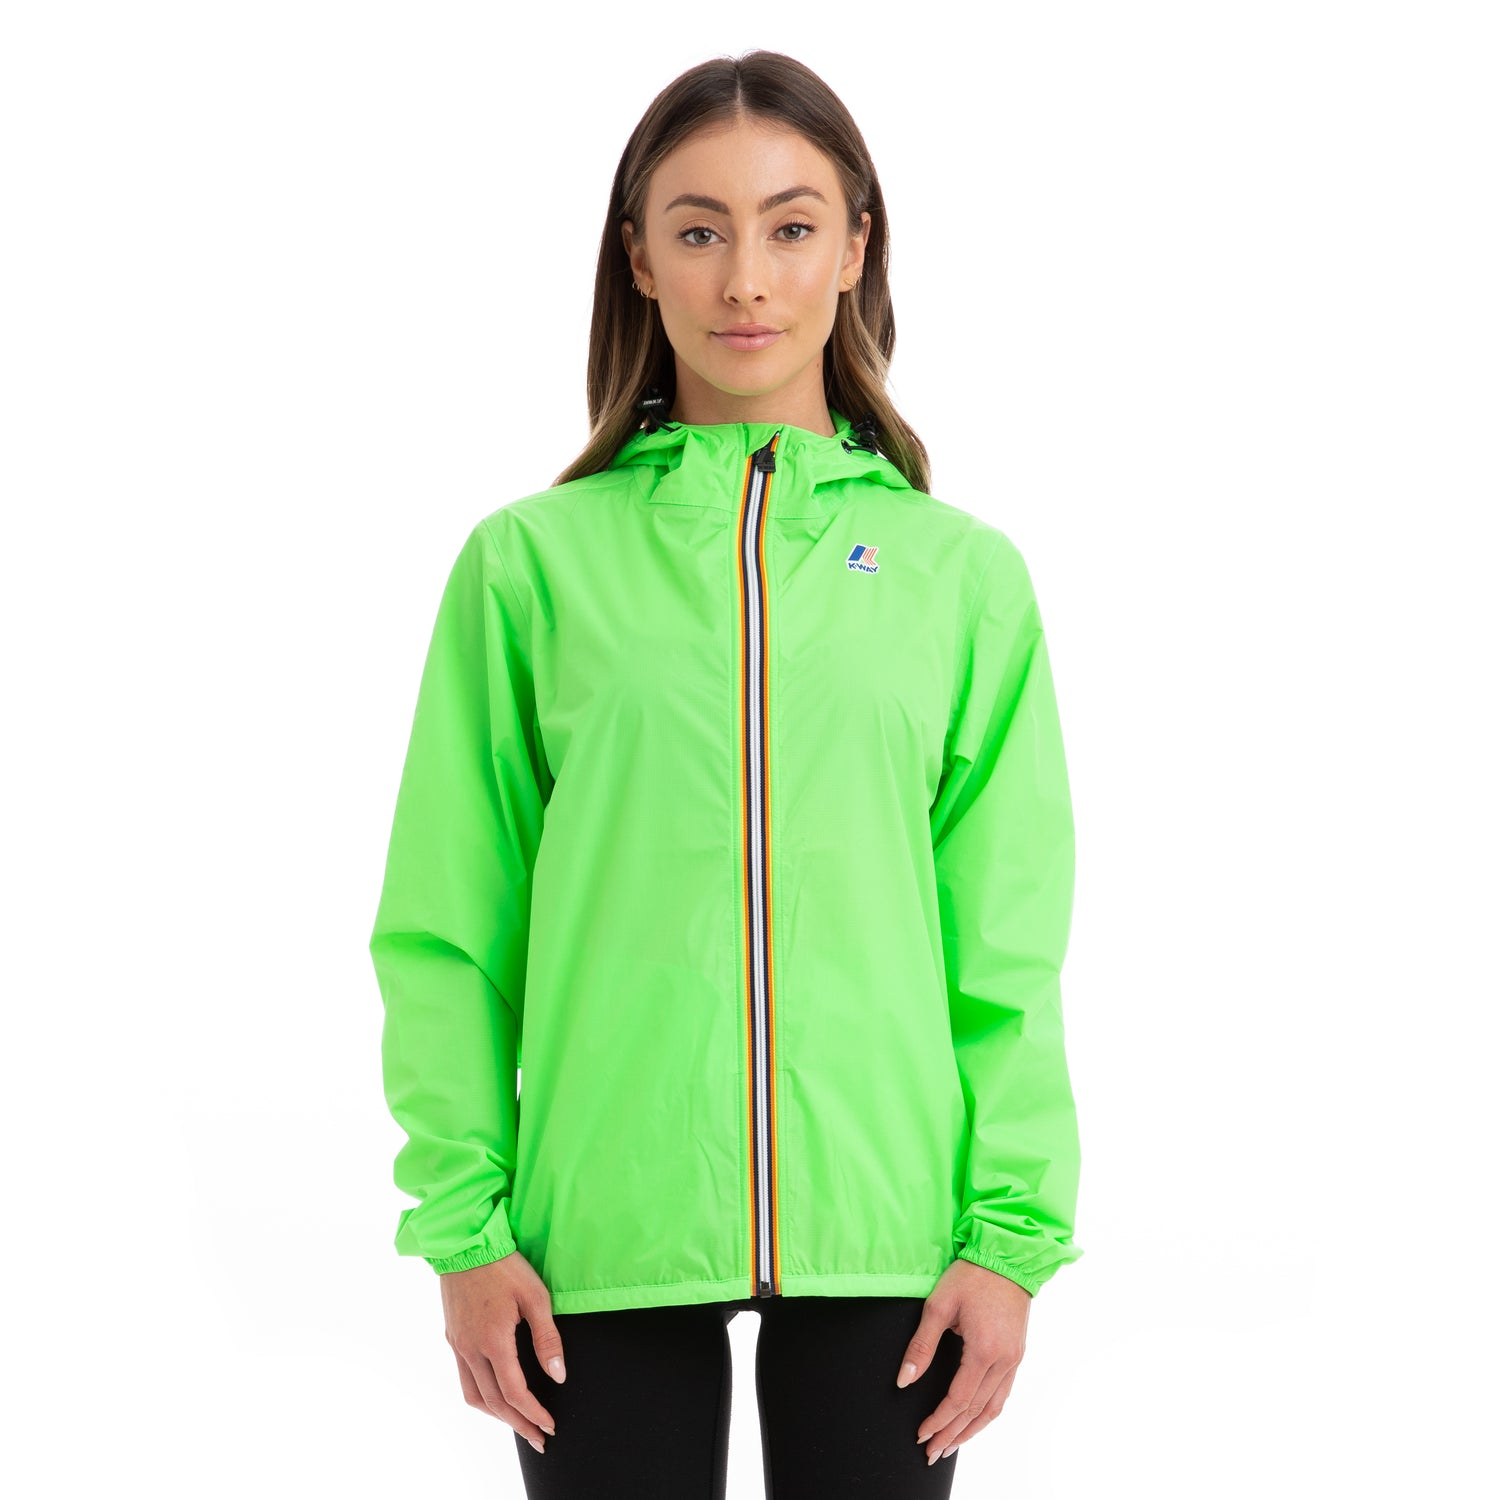 K-Way Women's Le Vrai 3.0 Claude Full Zip Jacket Green Fluo